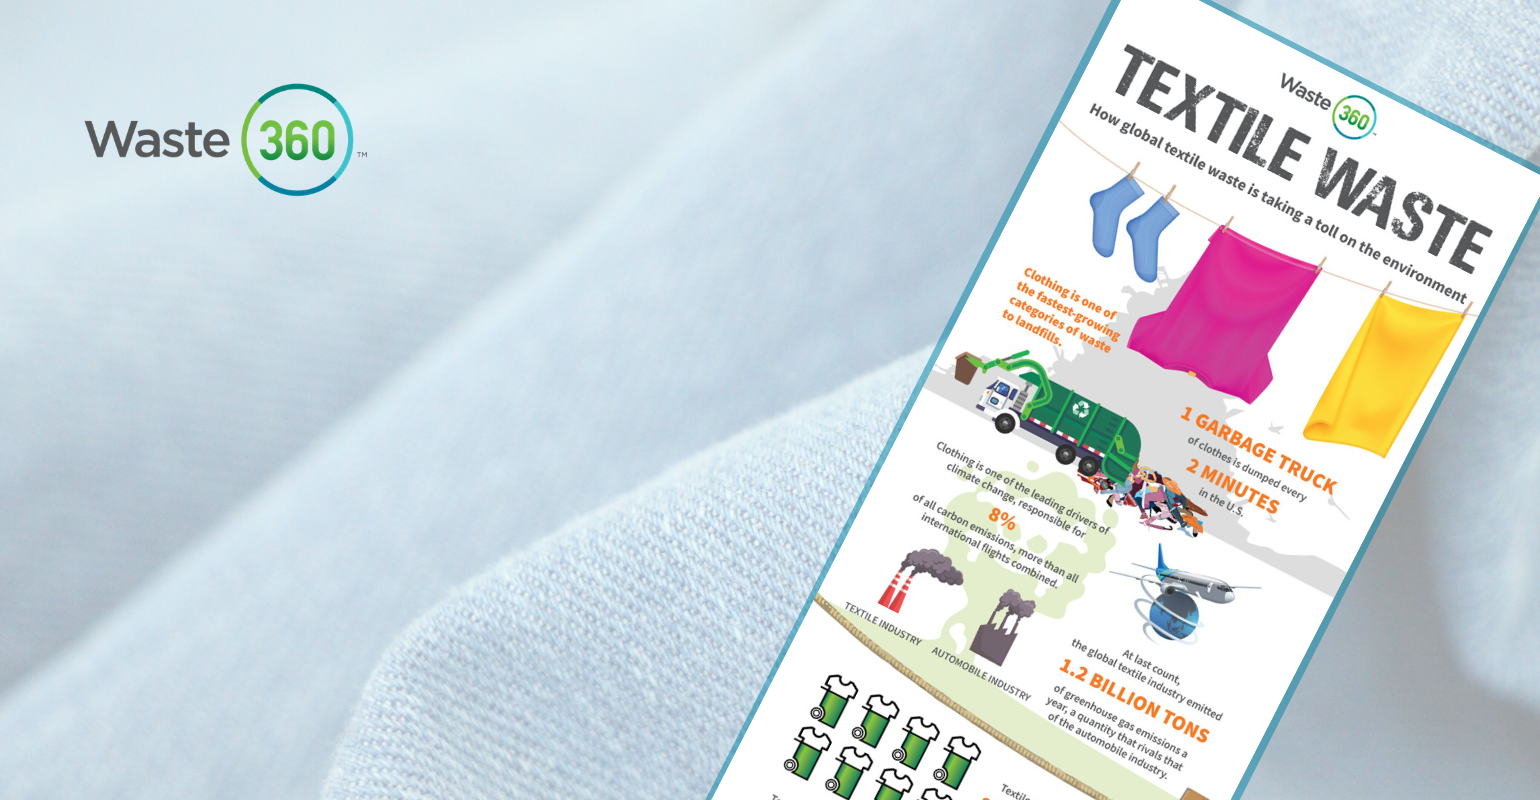 Textile Waste Infographic from Waste 360